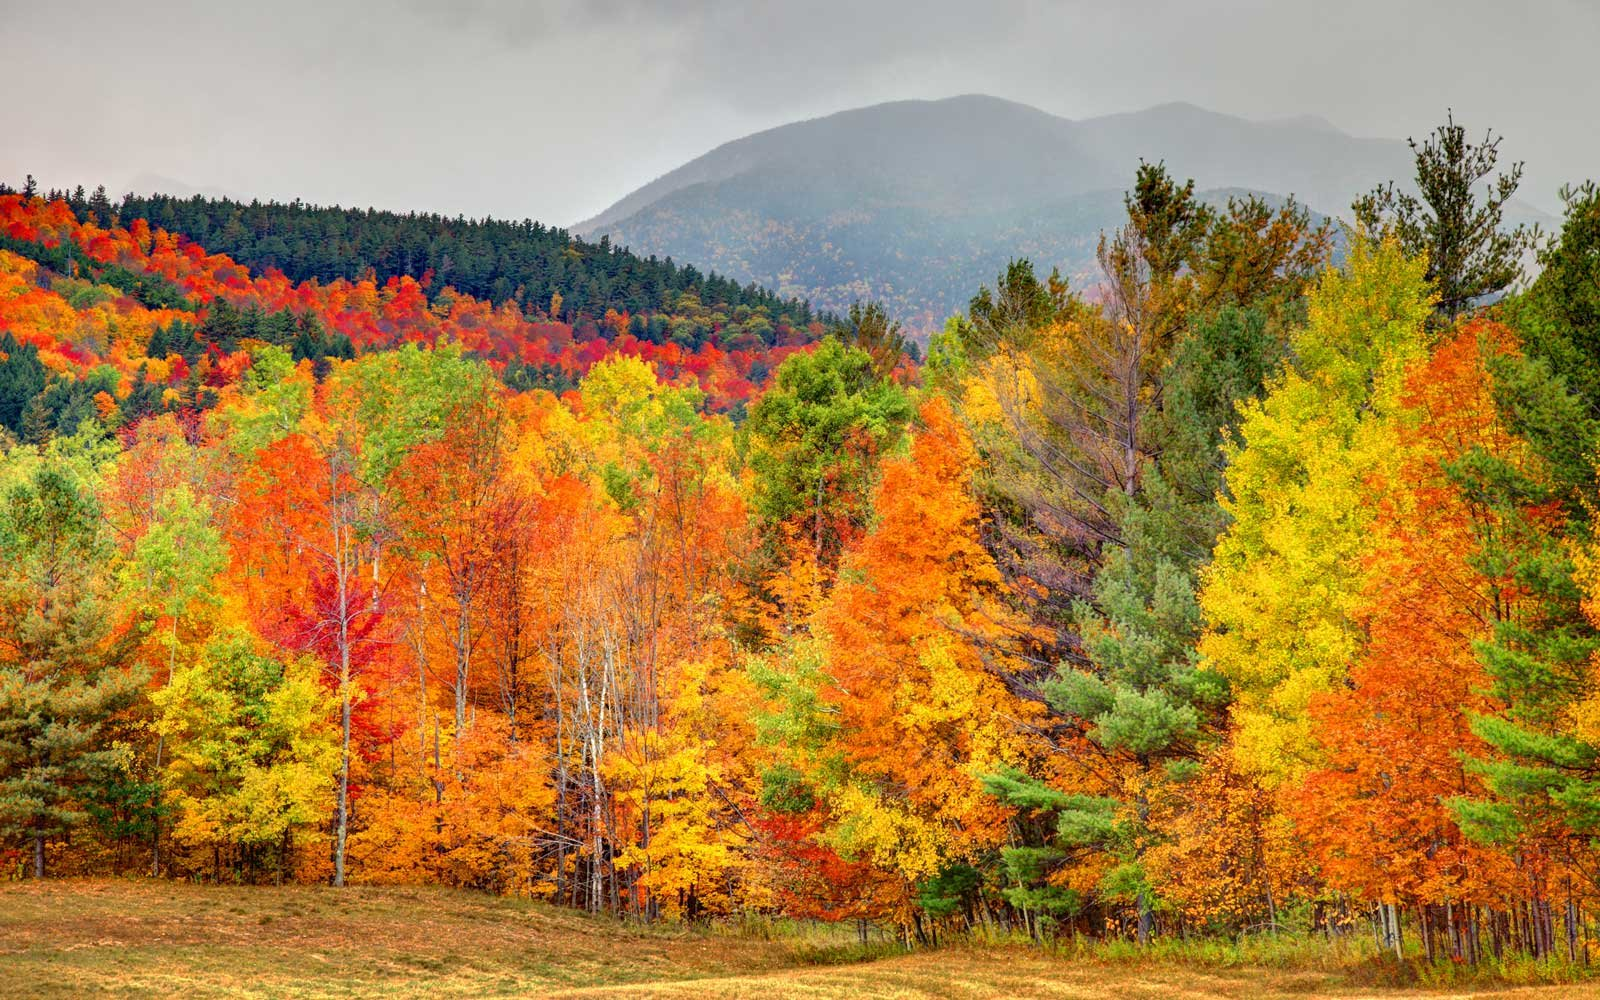 Autumn in the Adirondacks region of New York